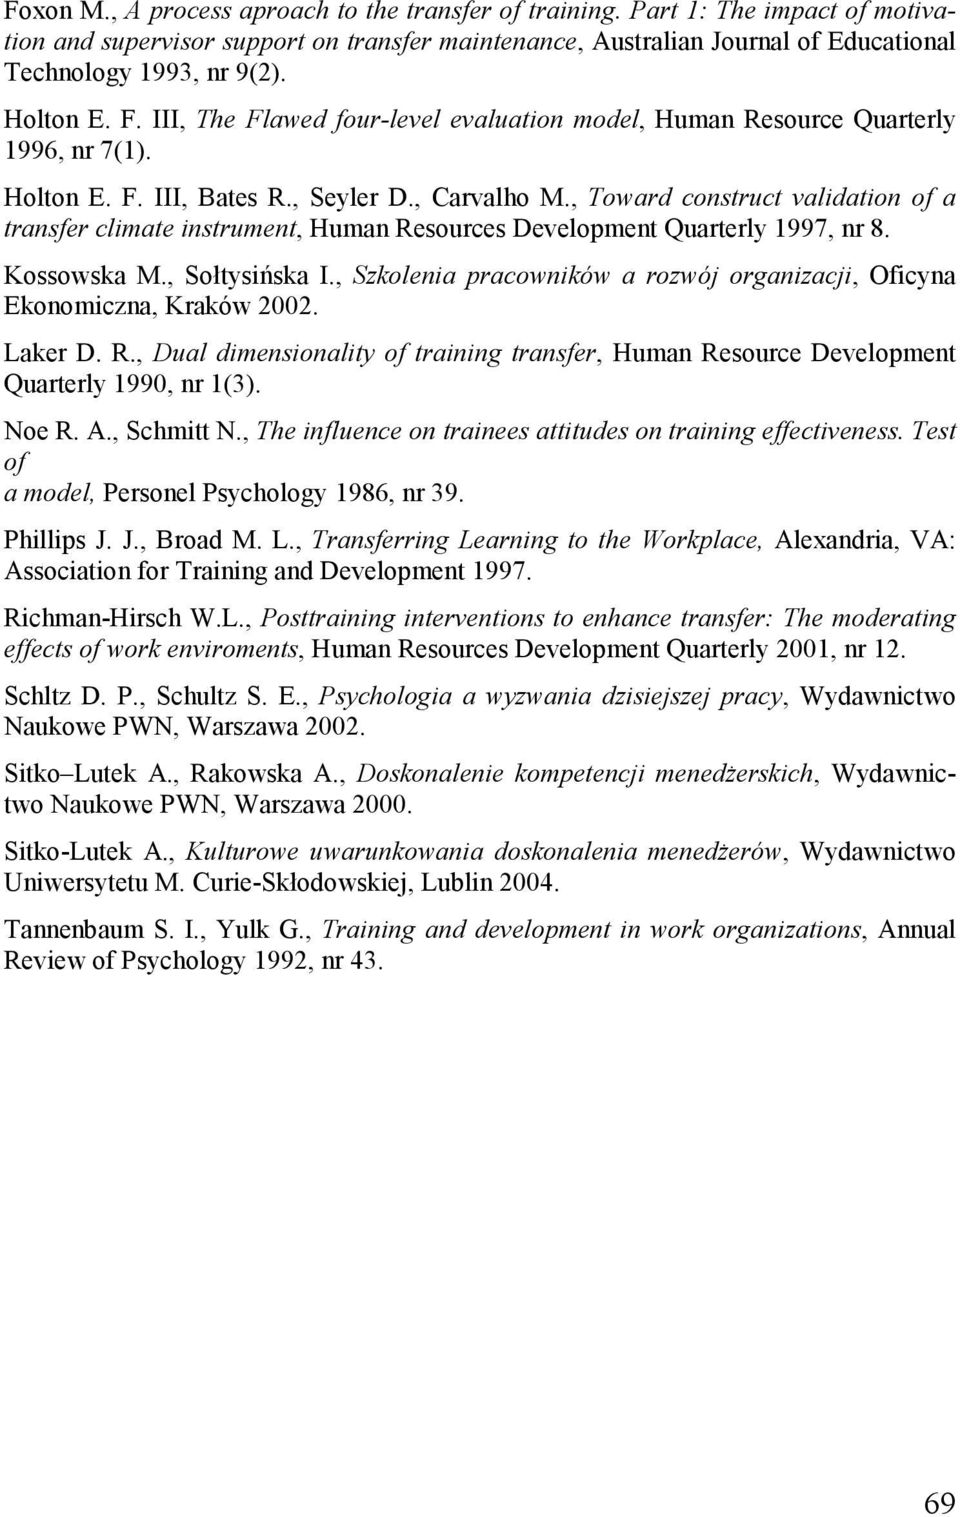 , Toward construct validation of a transfer climate instrument, Human Resources Development Quarterly 1997, nr 8. Kossowska M., Sołtysińska I.